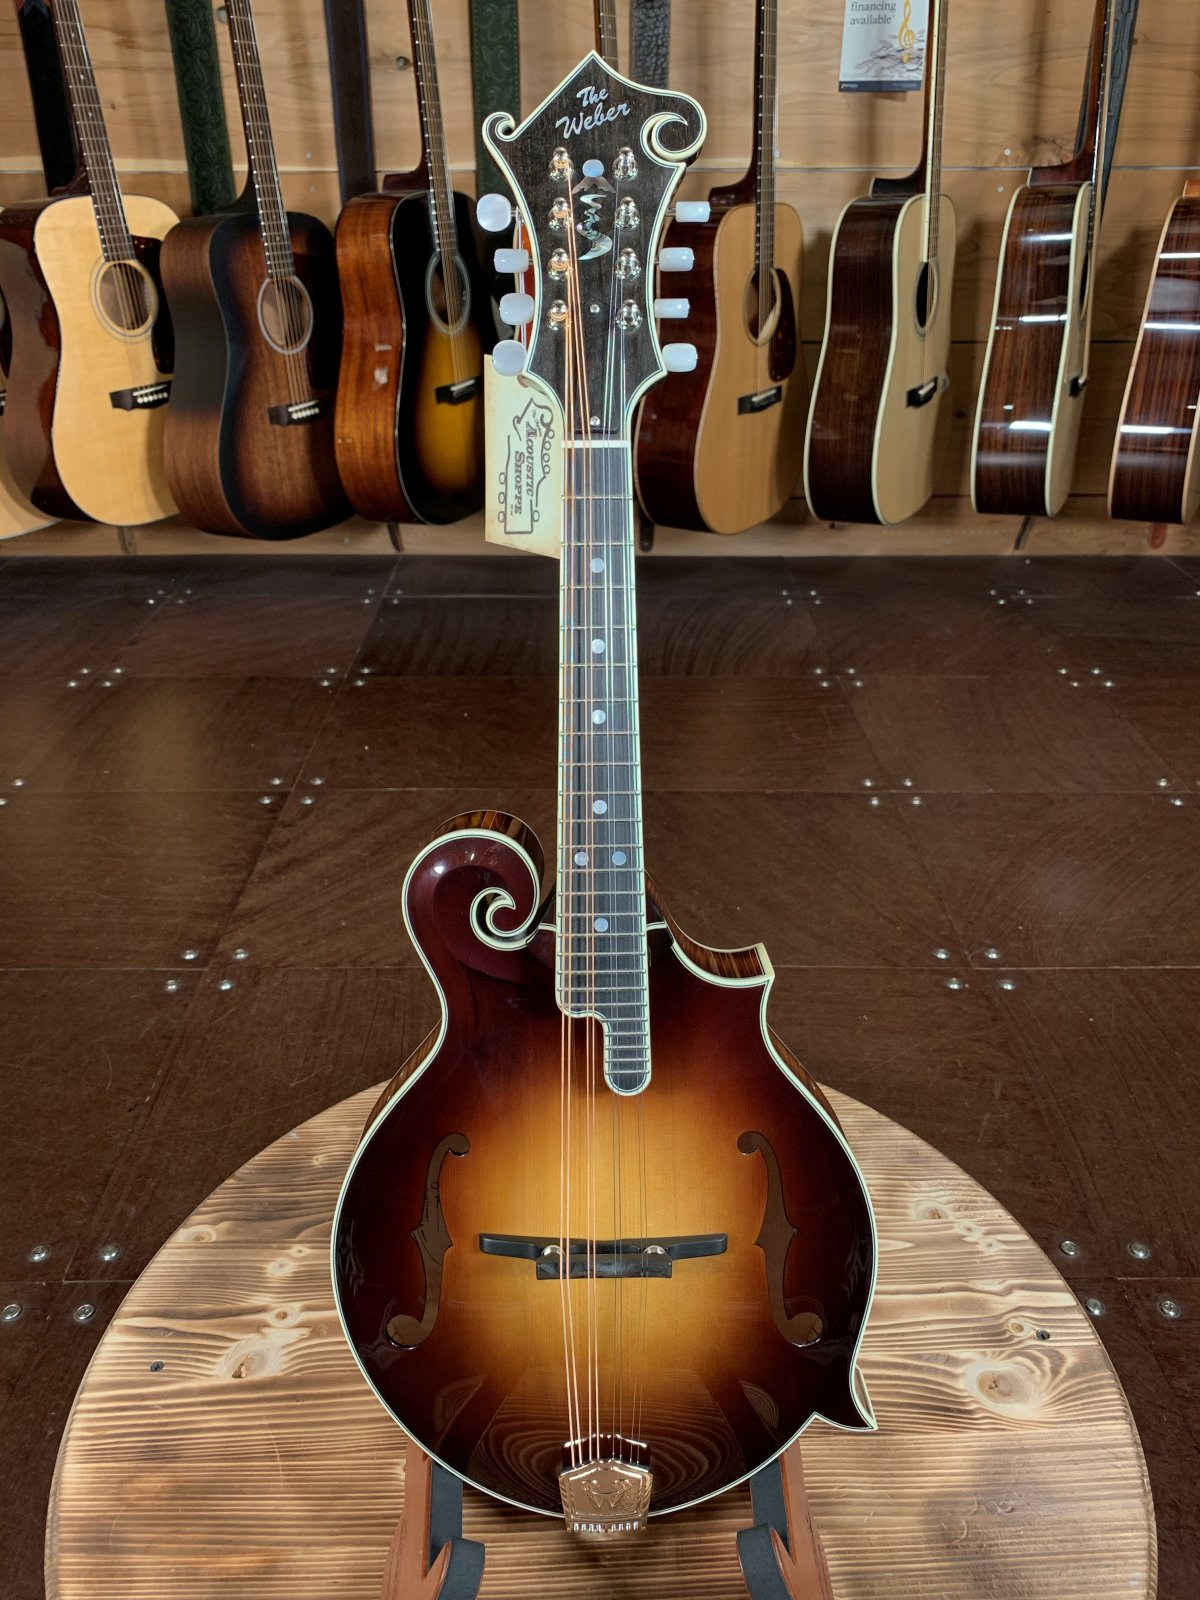 Weber Crooked River F-style Mandolin Limited Edition #5 of 5